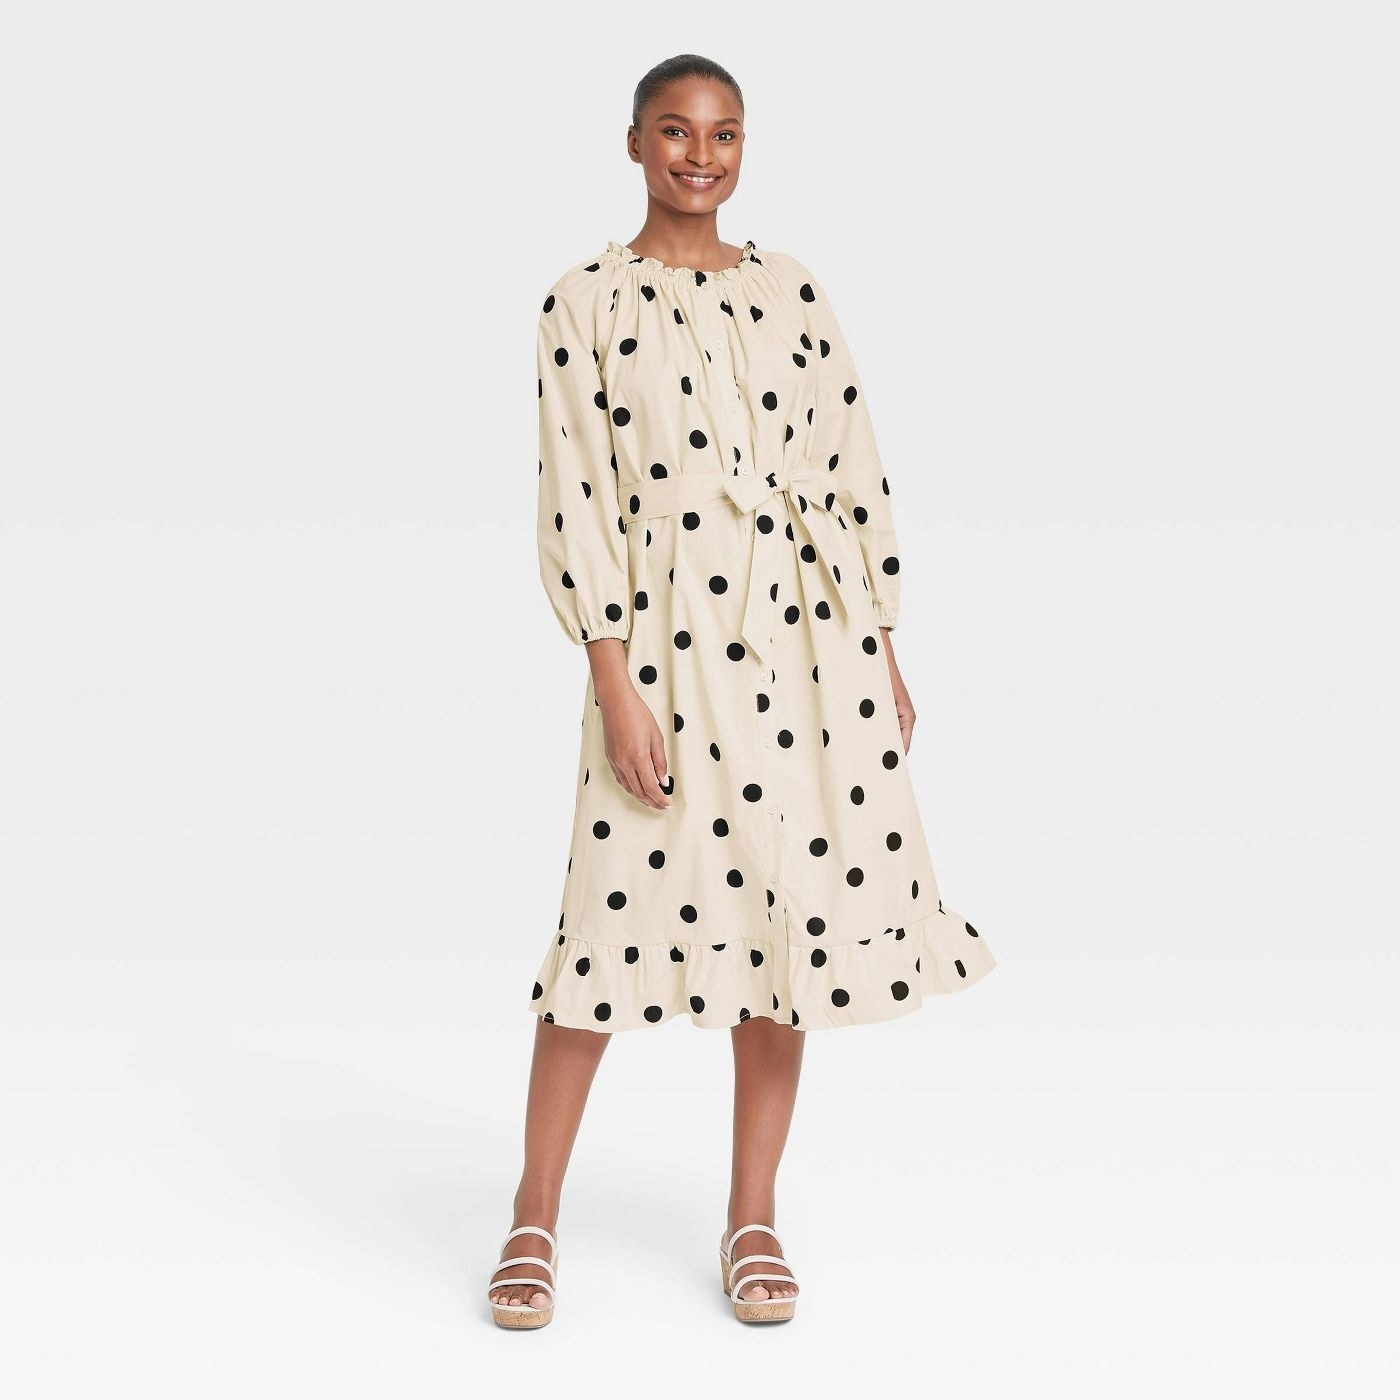 Model wearing off-white dress with black dots, goes past the knee